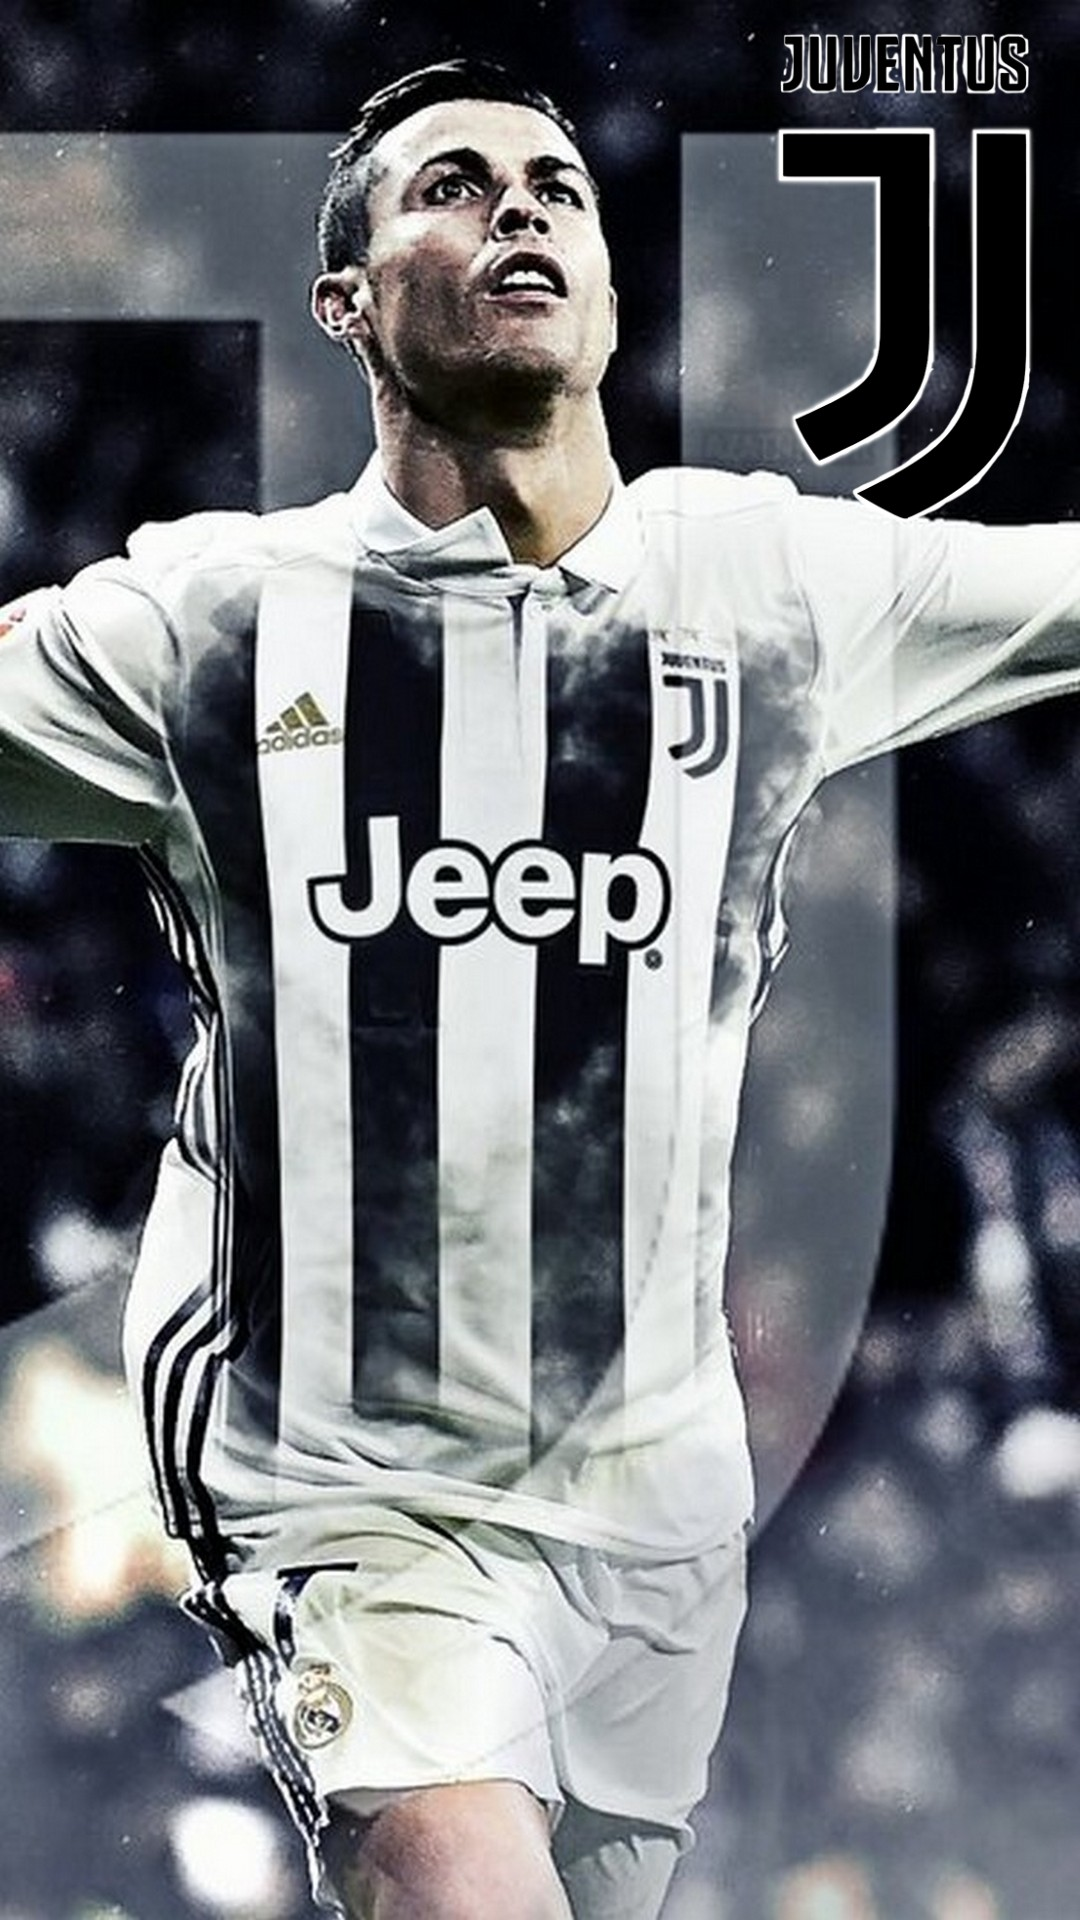 cristiano ronaldo wallpaper juventus posted by michelle mercado cristiano ronaldo wallpaper juventus